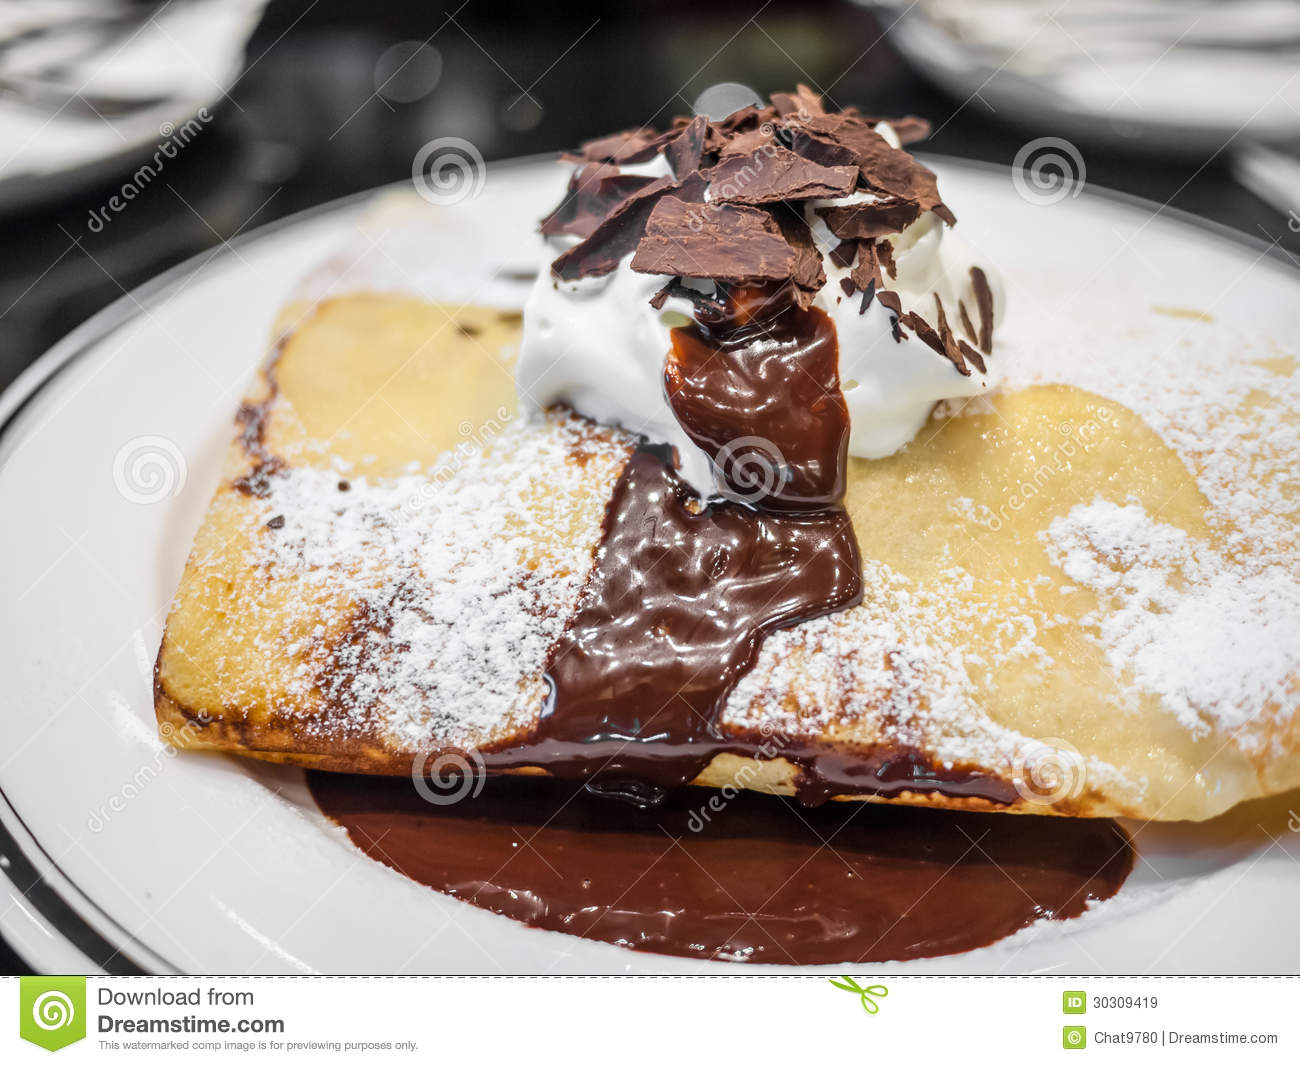 Fotos De Stock Chat9780: Chocolate Crepe Royalty Free Stock Images